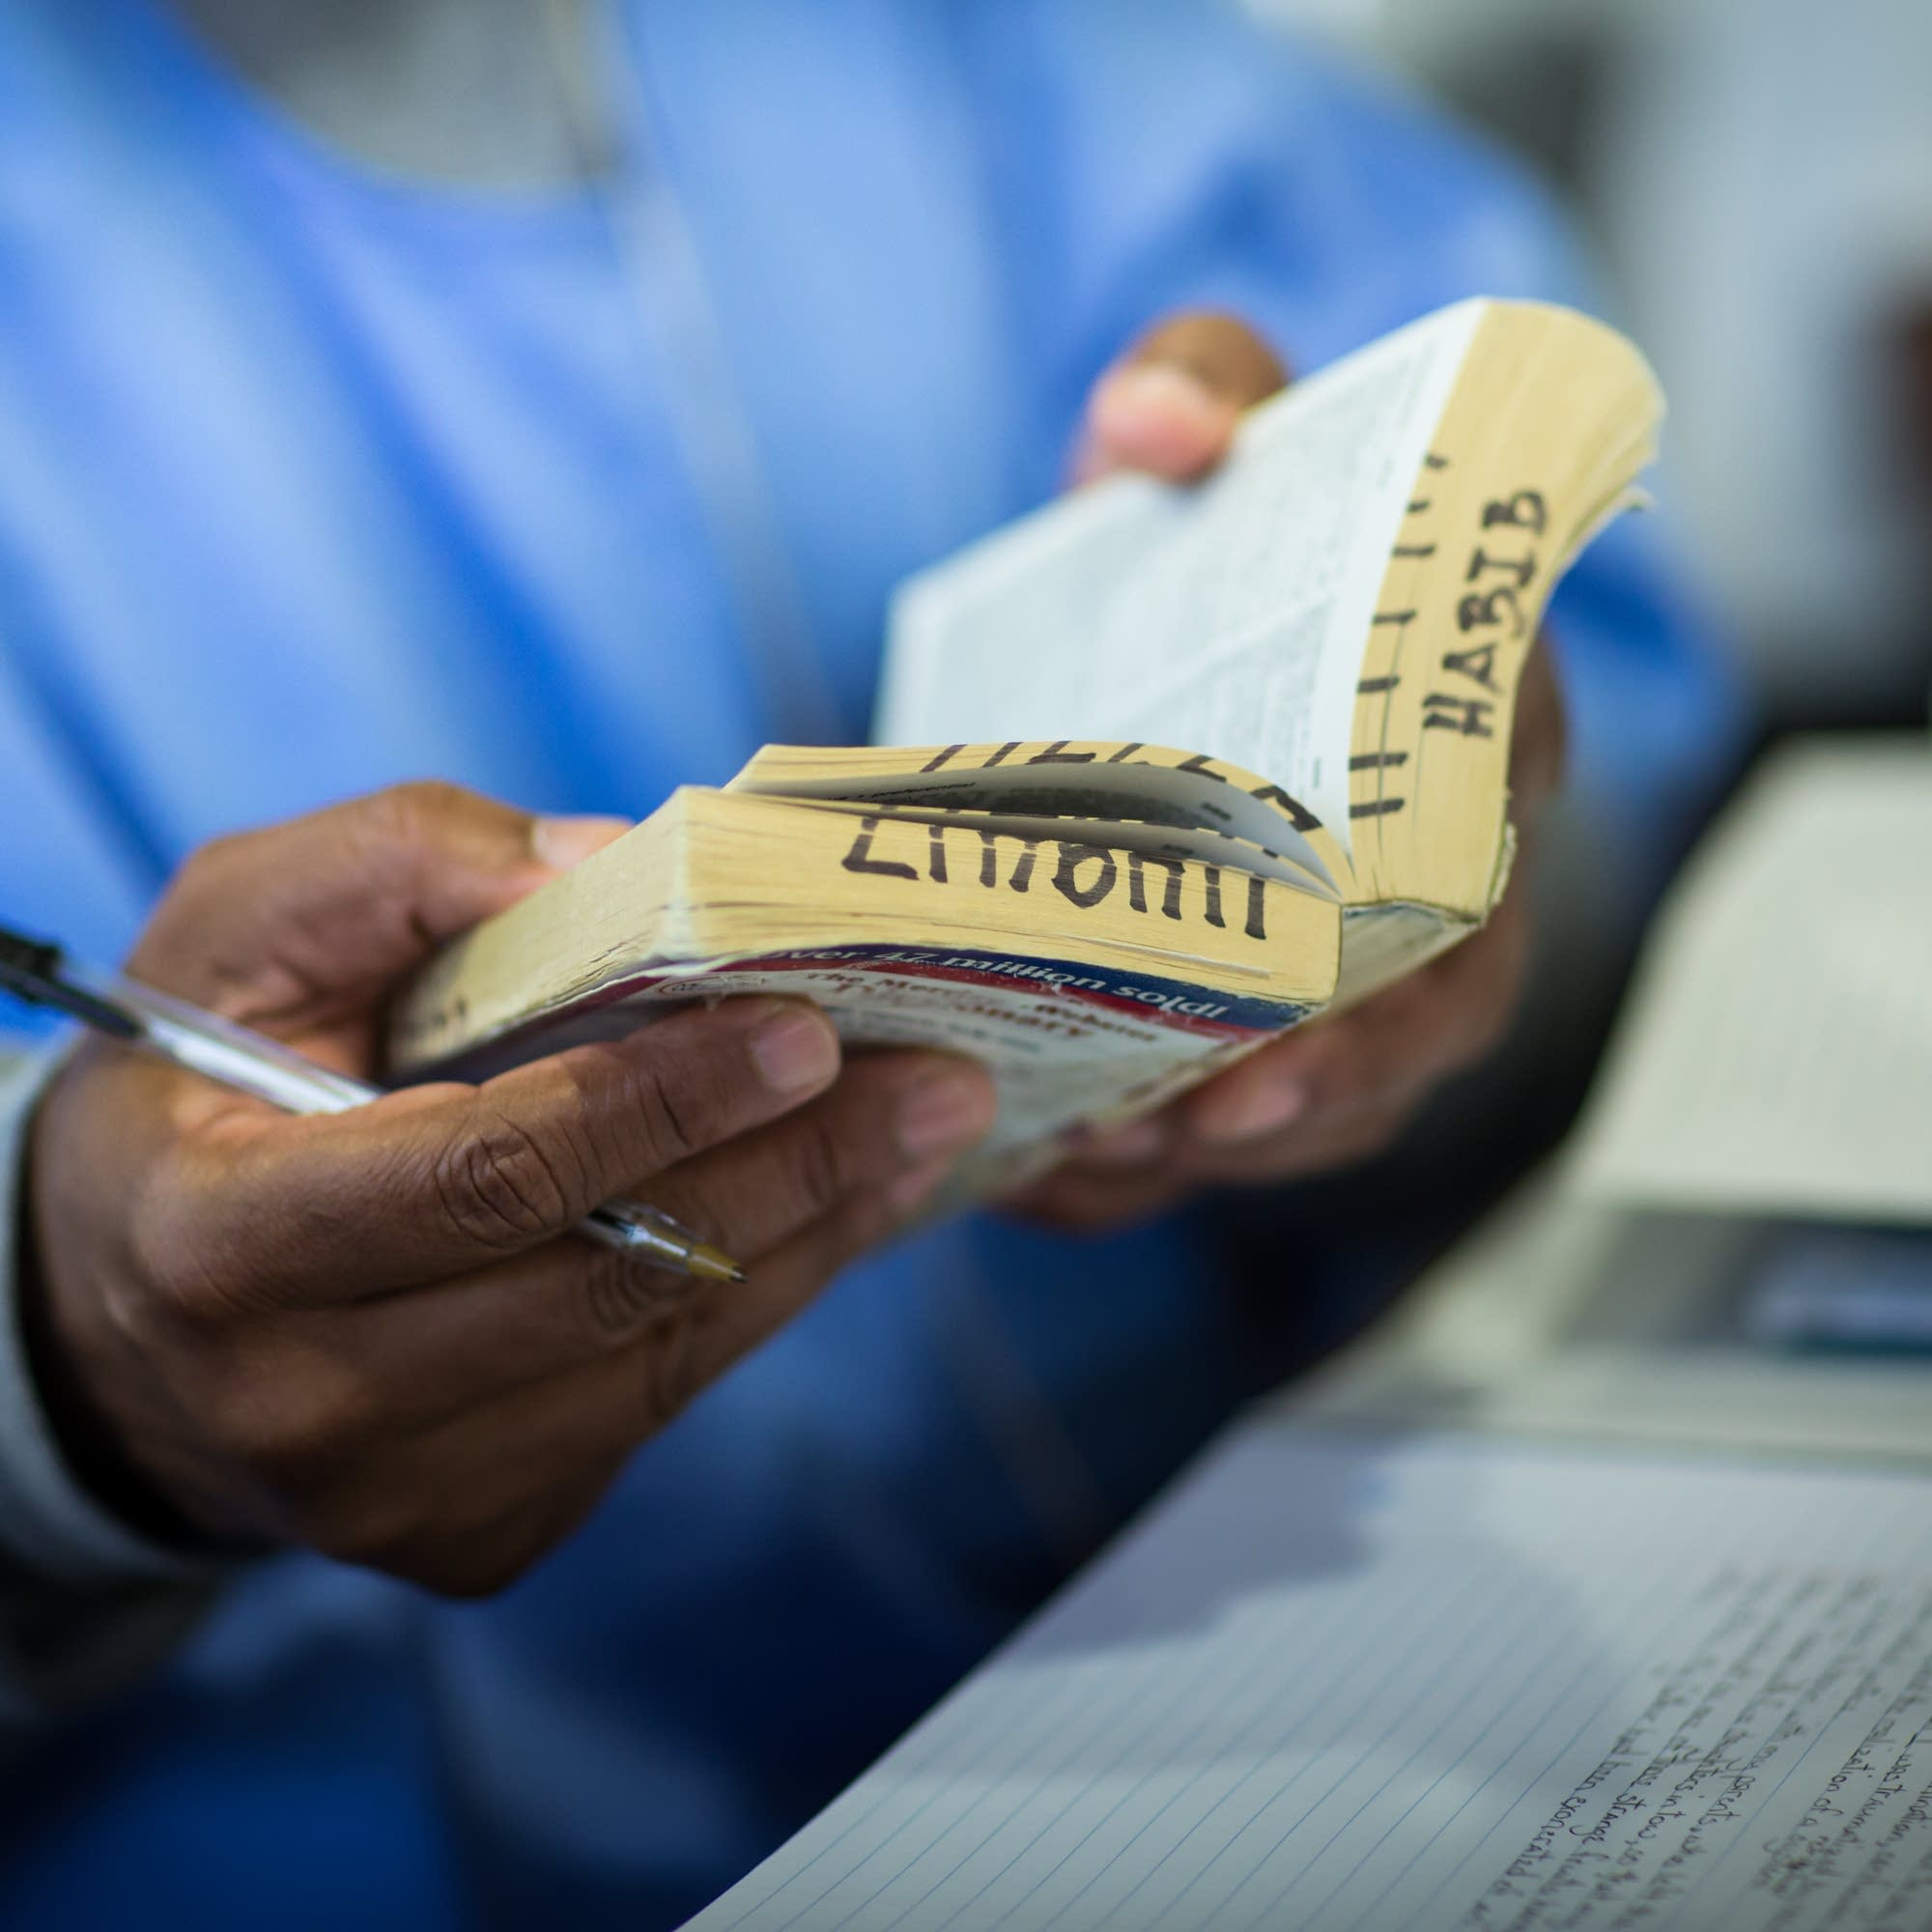 Life after prison: The 'sentence never ends'   MPR News